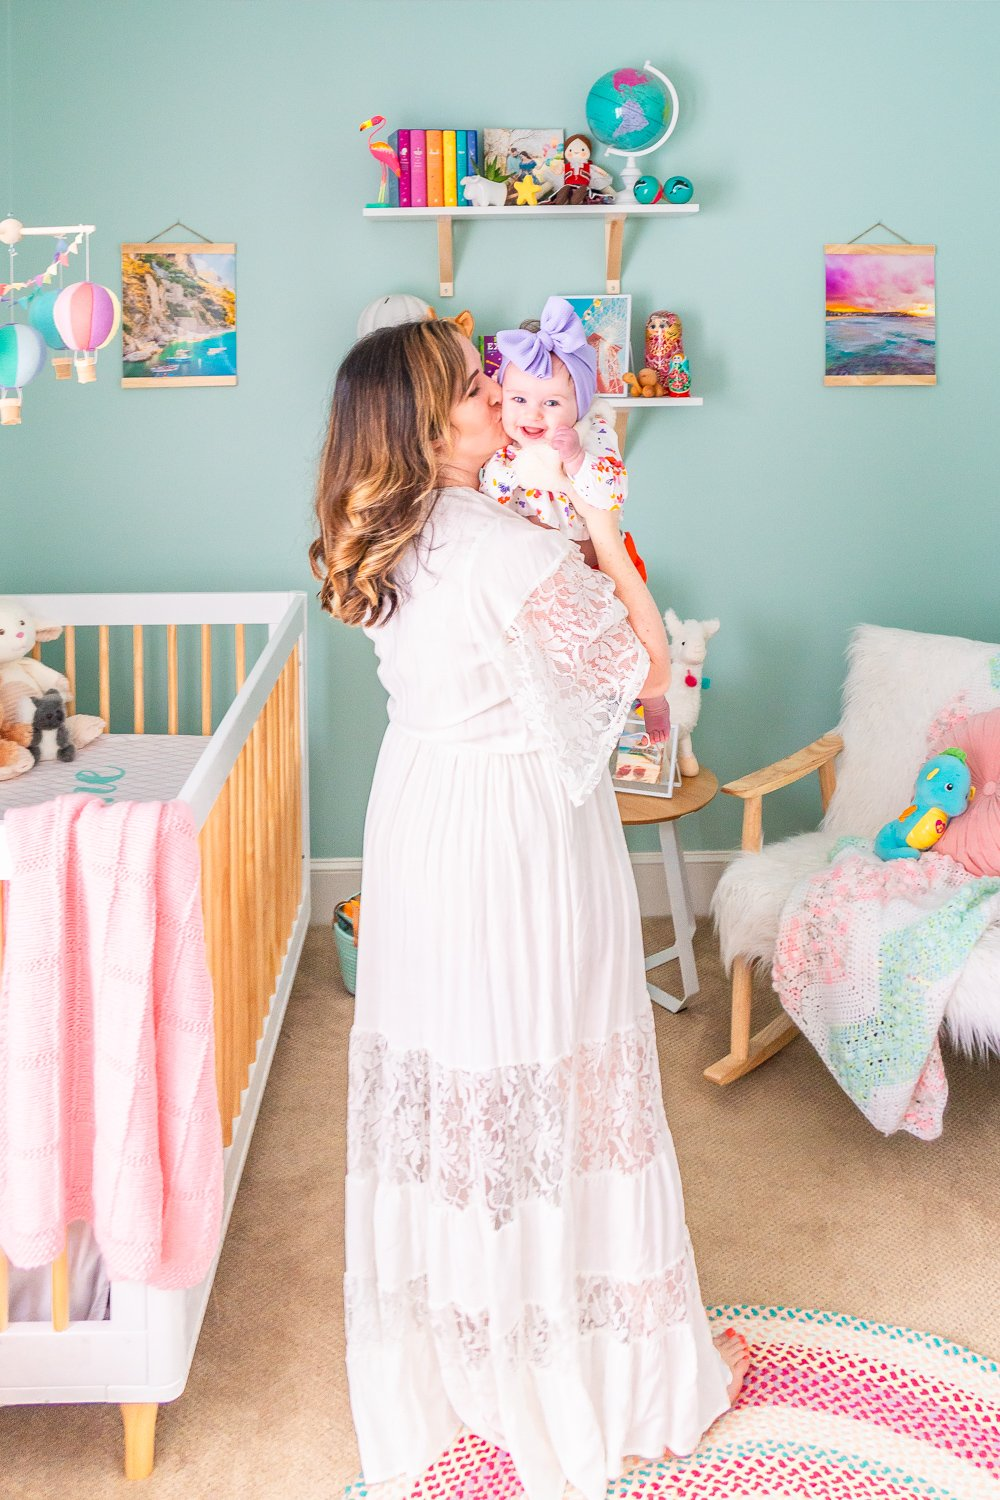 Woman holding baby girl in travel inspired nursery